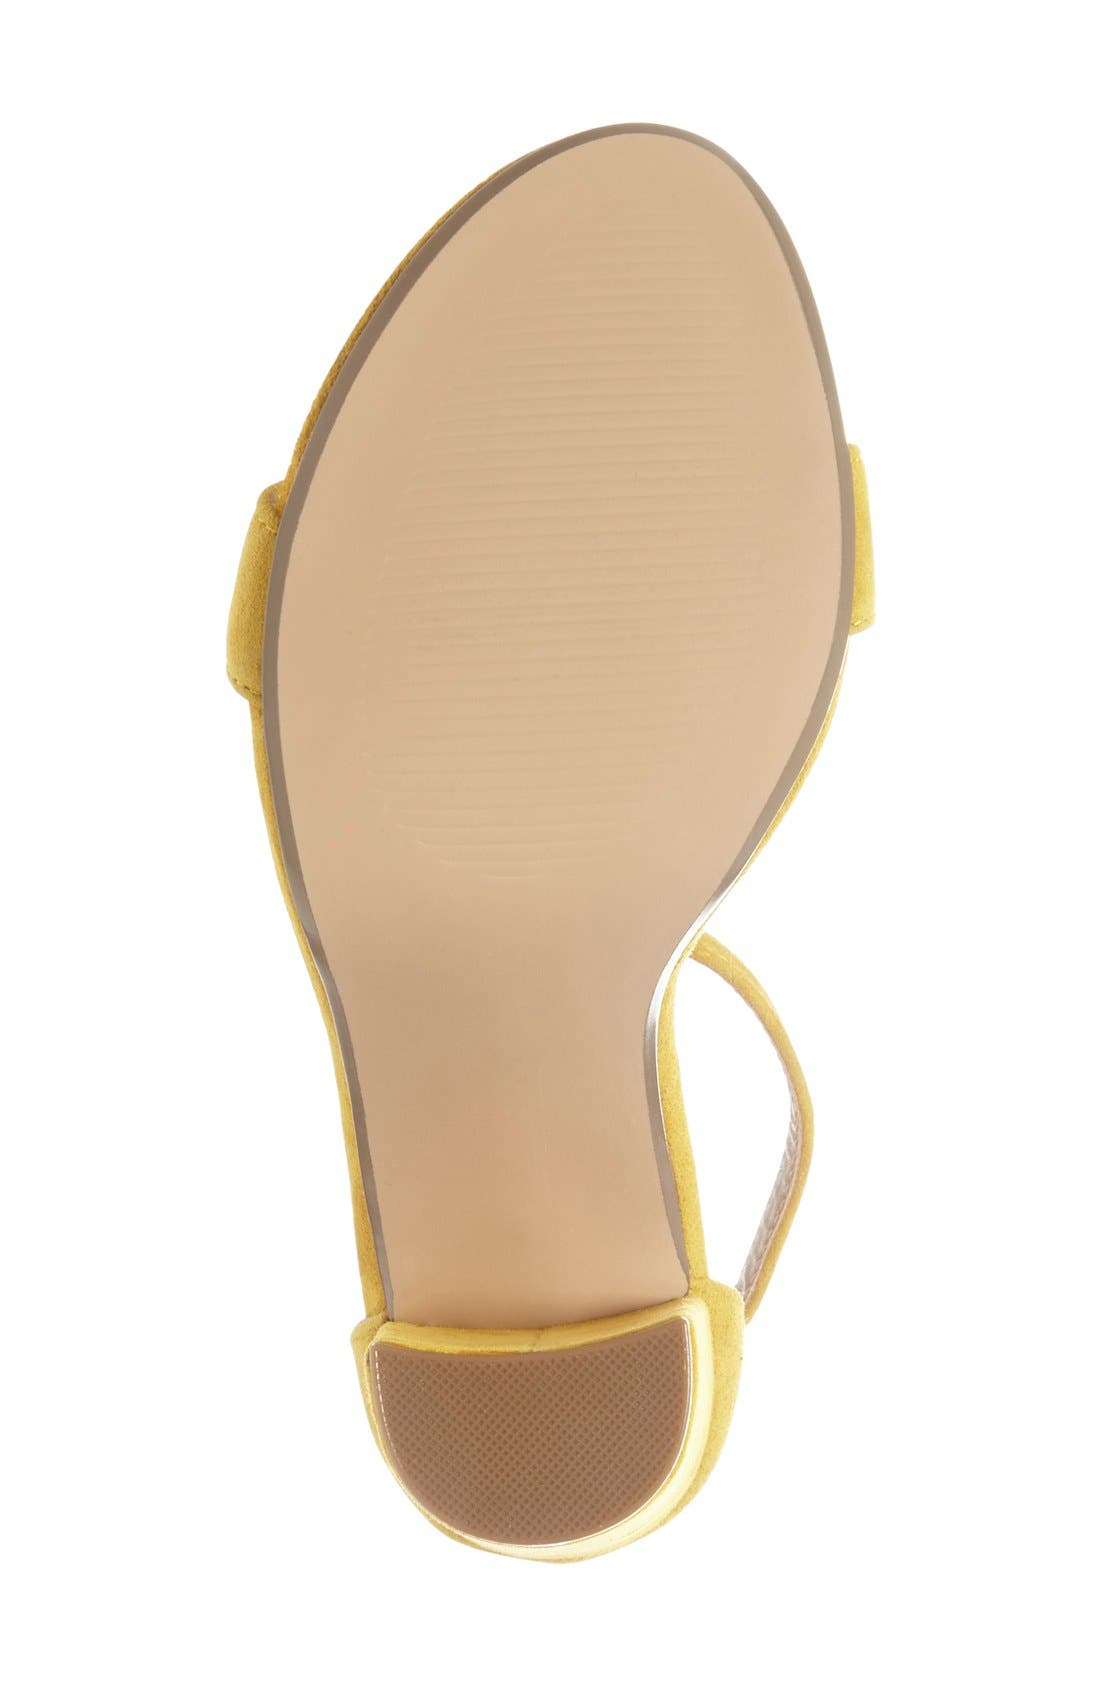 Carrson Sandal,                             Alternate thumbnail 229, color,